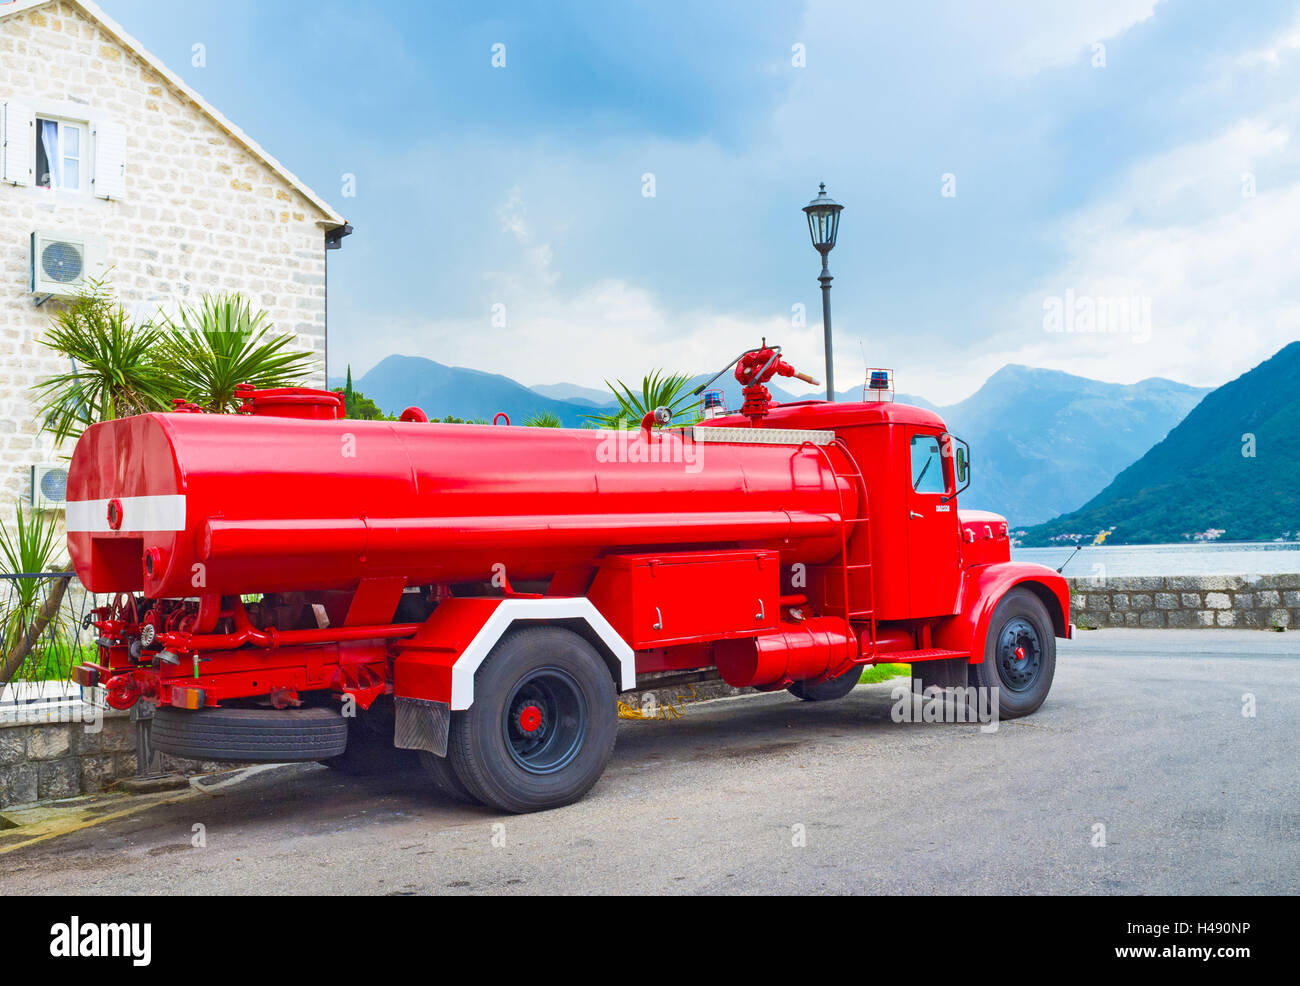 The retro fire truck parked on the promenade of Perast, Montenegro. Stock Photo